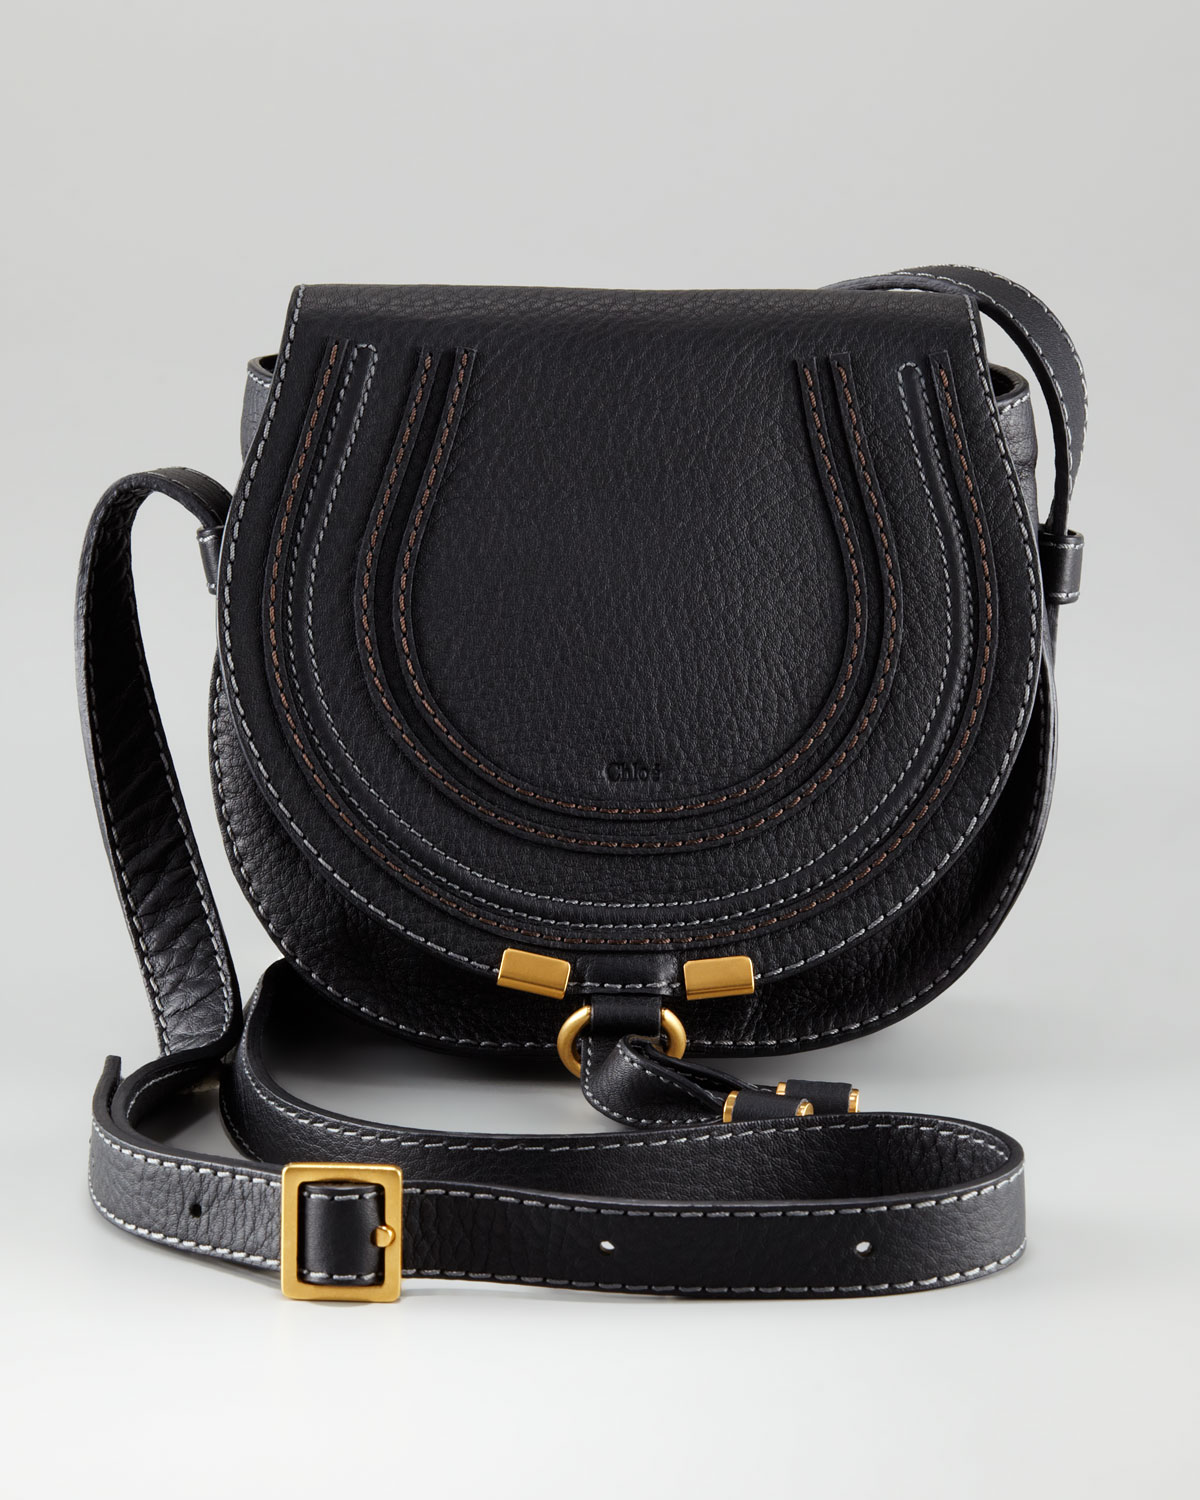 Chloé Marcie Small Satchel Bag in Black | Lyst